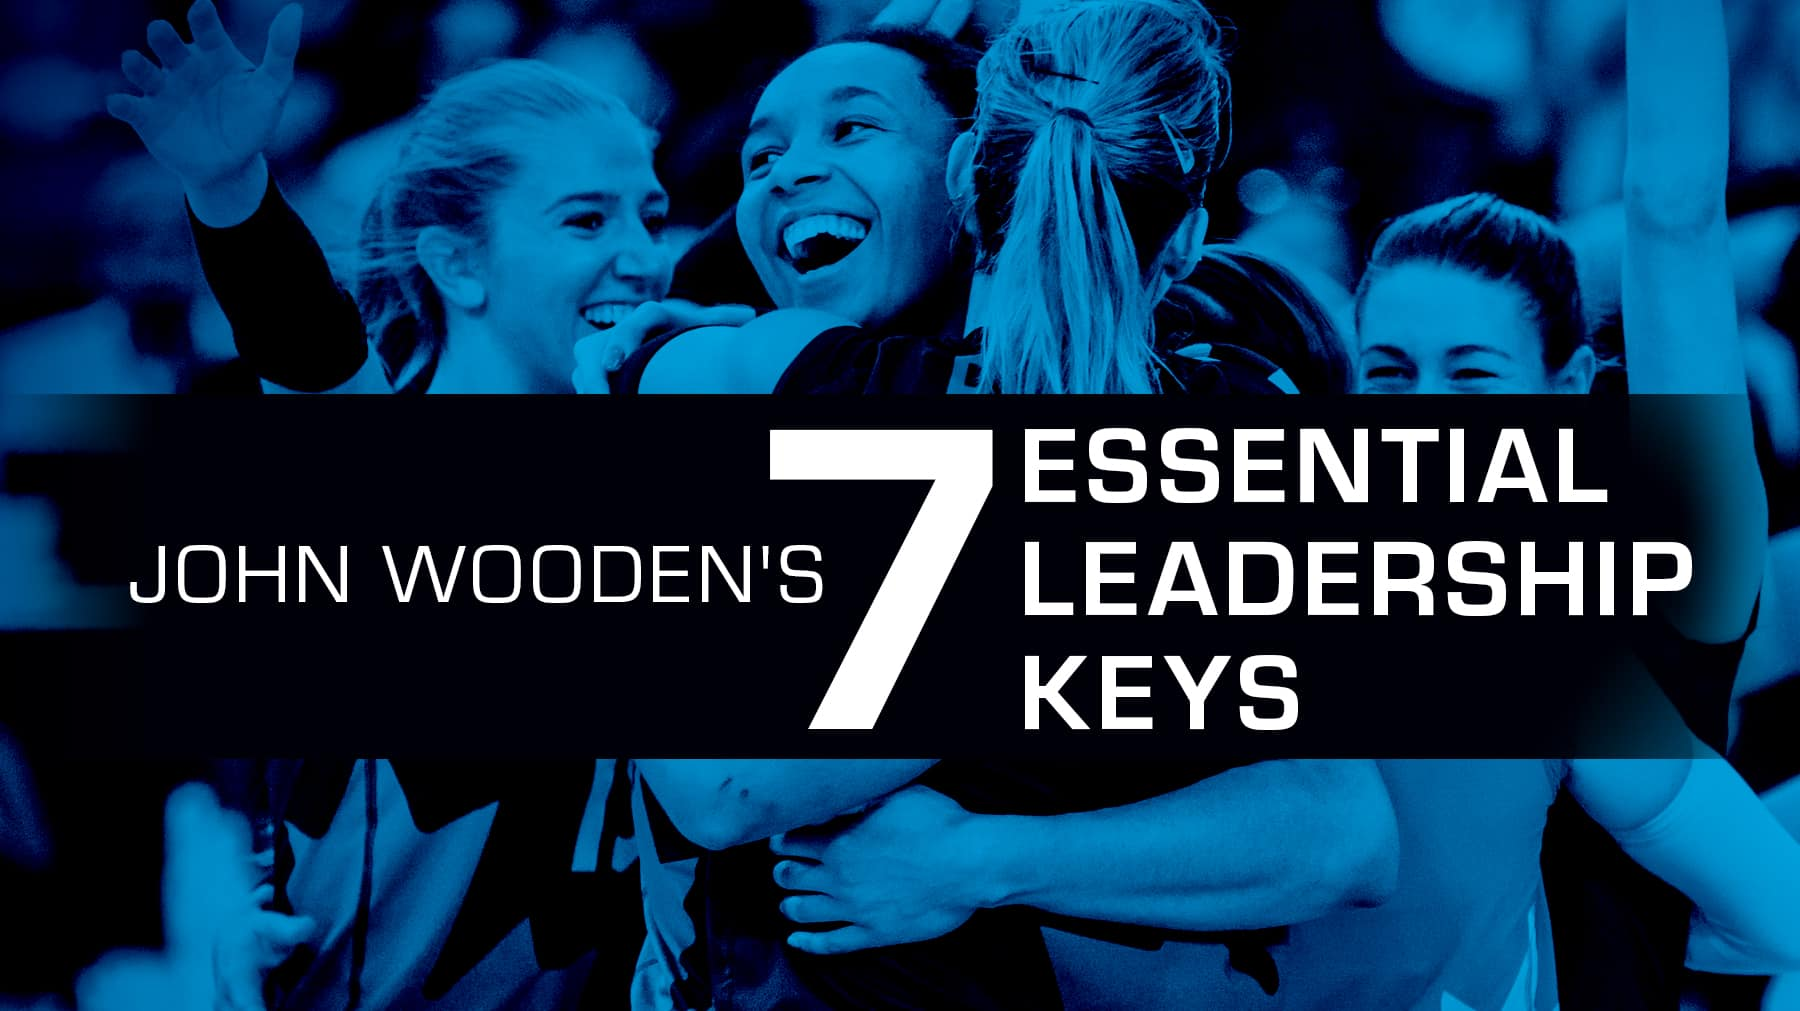 John Wooden's 7 essential leadership keys